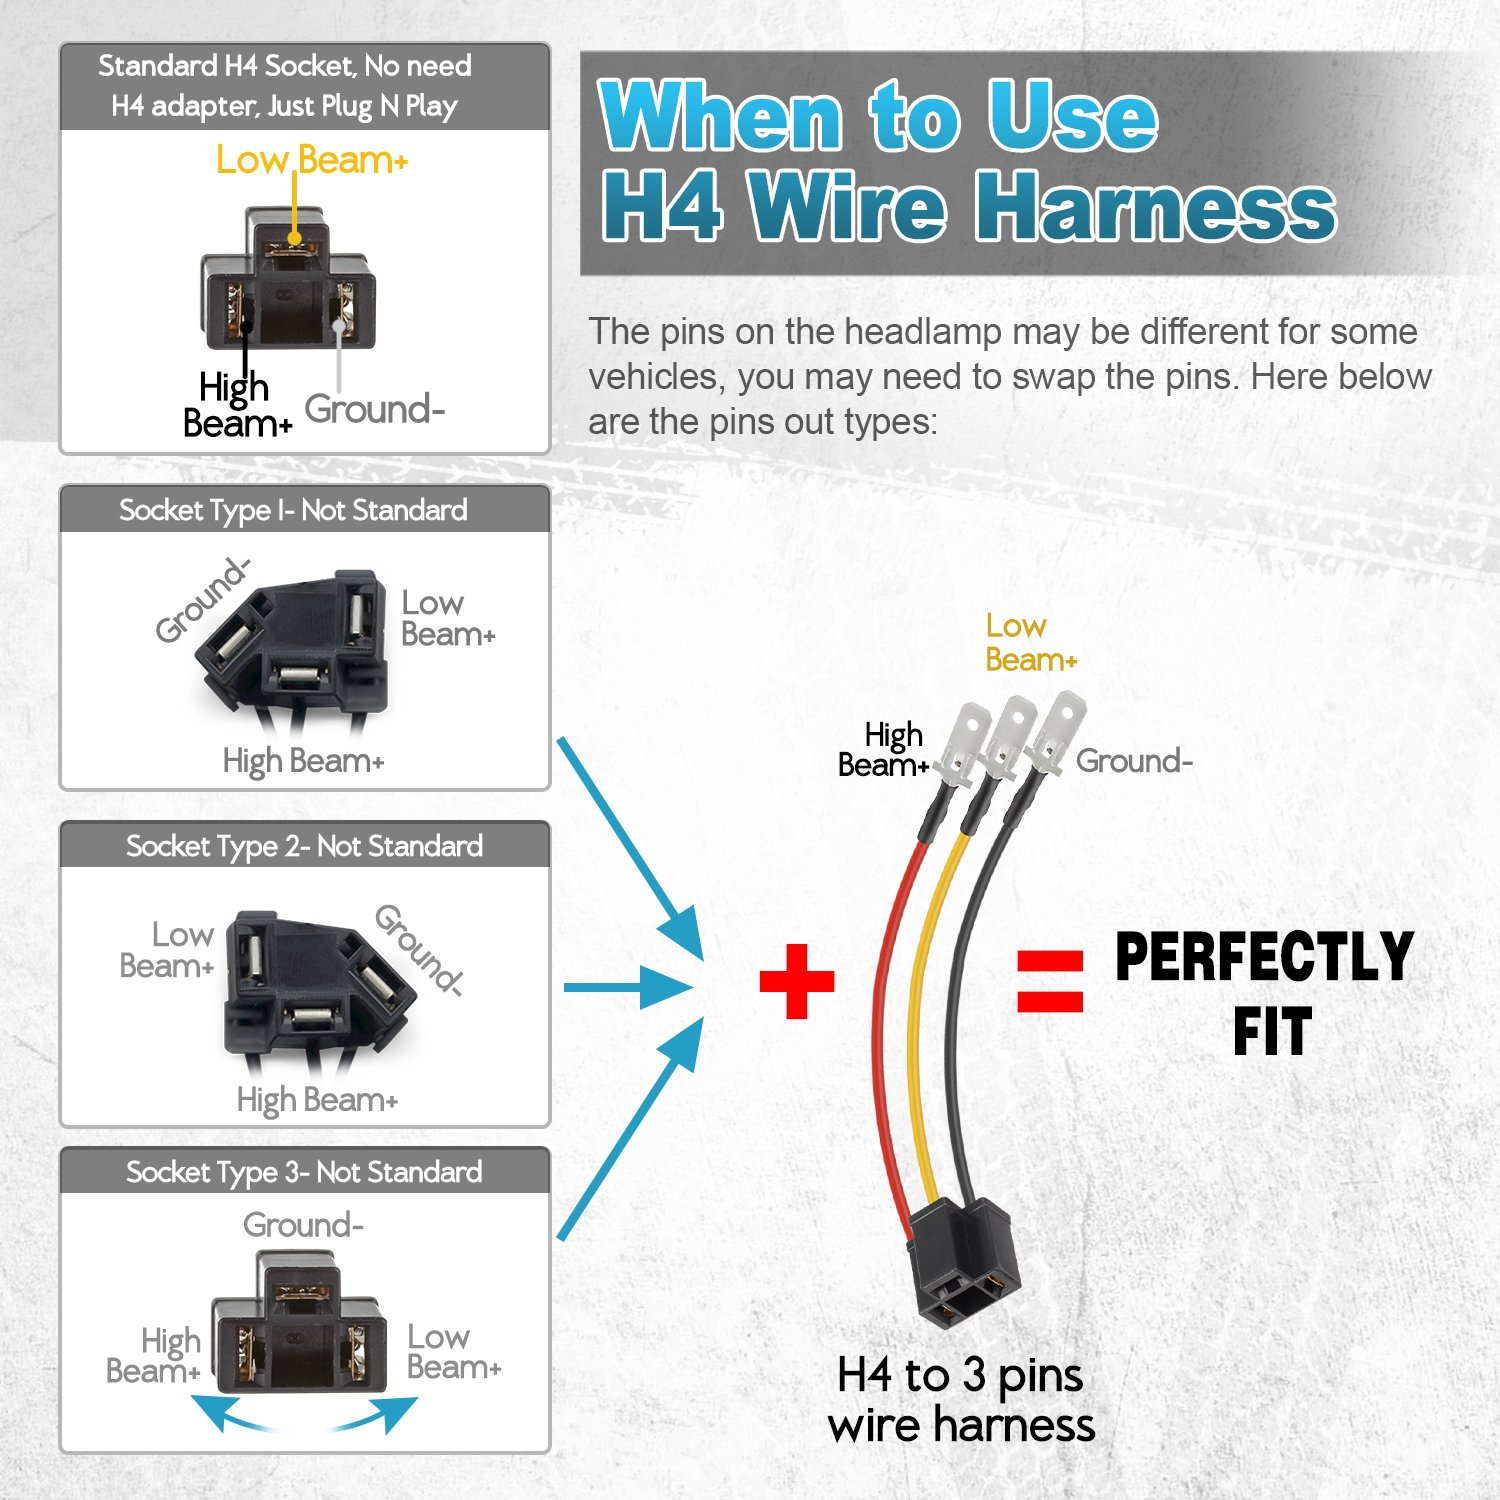 Partsam 2x 4x6 Inch Led Headlights Rectangular Sealed Diagram Also Trailer Wiring Color Code On H4 Headlight Beam Headlamp H4651 H4652 H4656 H4666 H6545 Replacement Socket Hi Lo Peterbilt 379